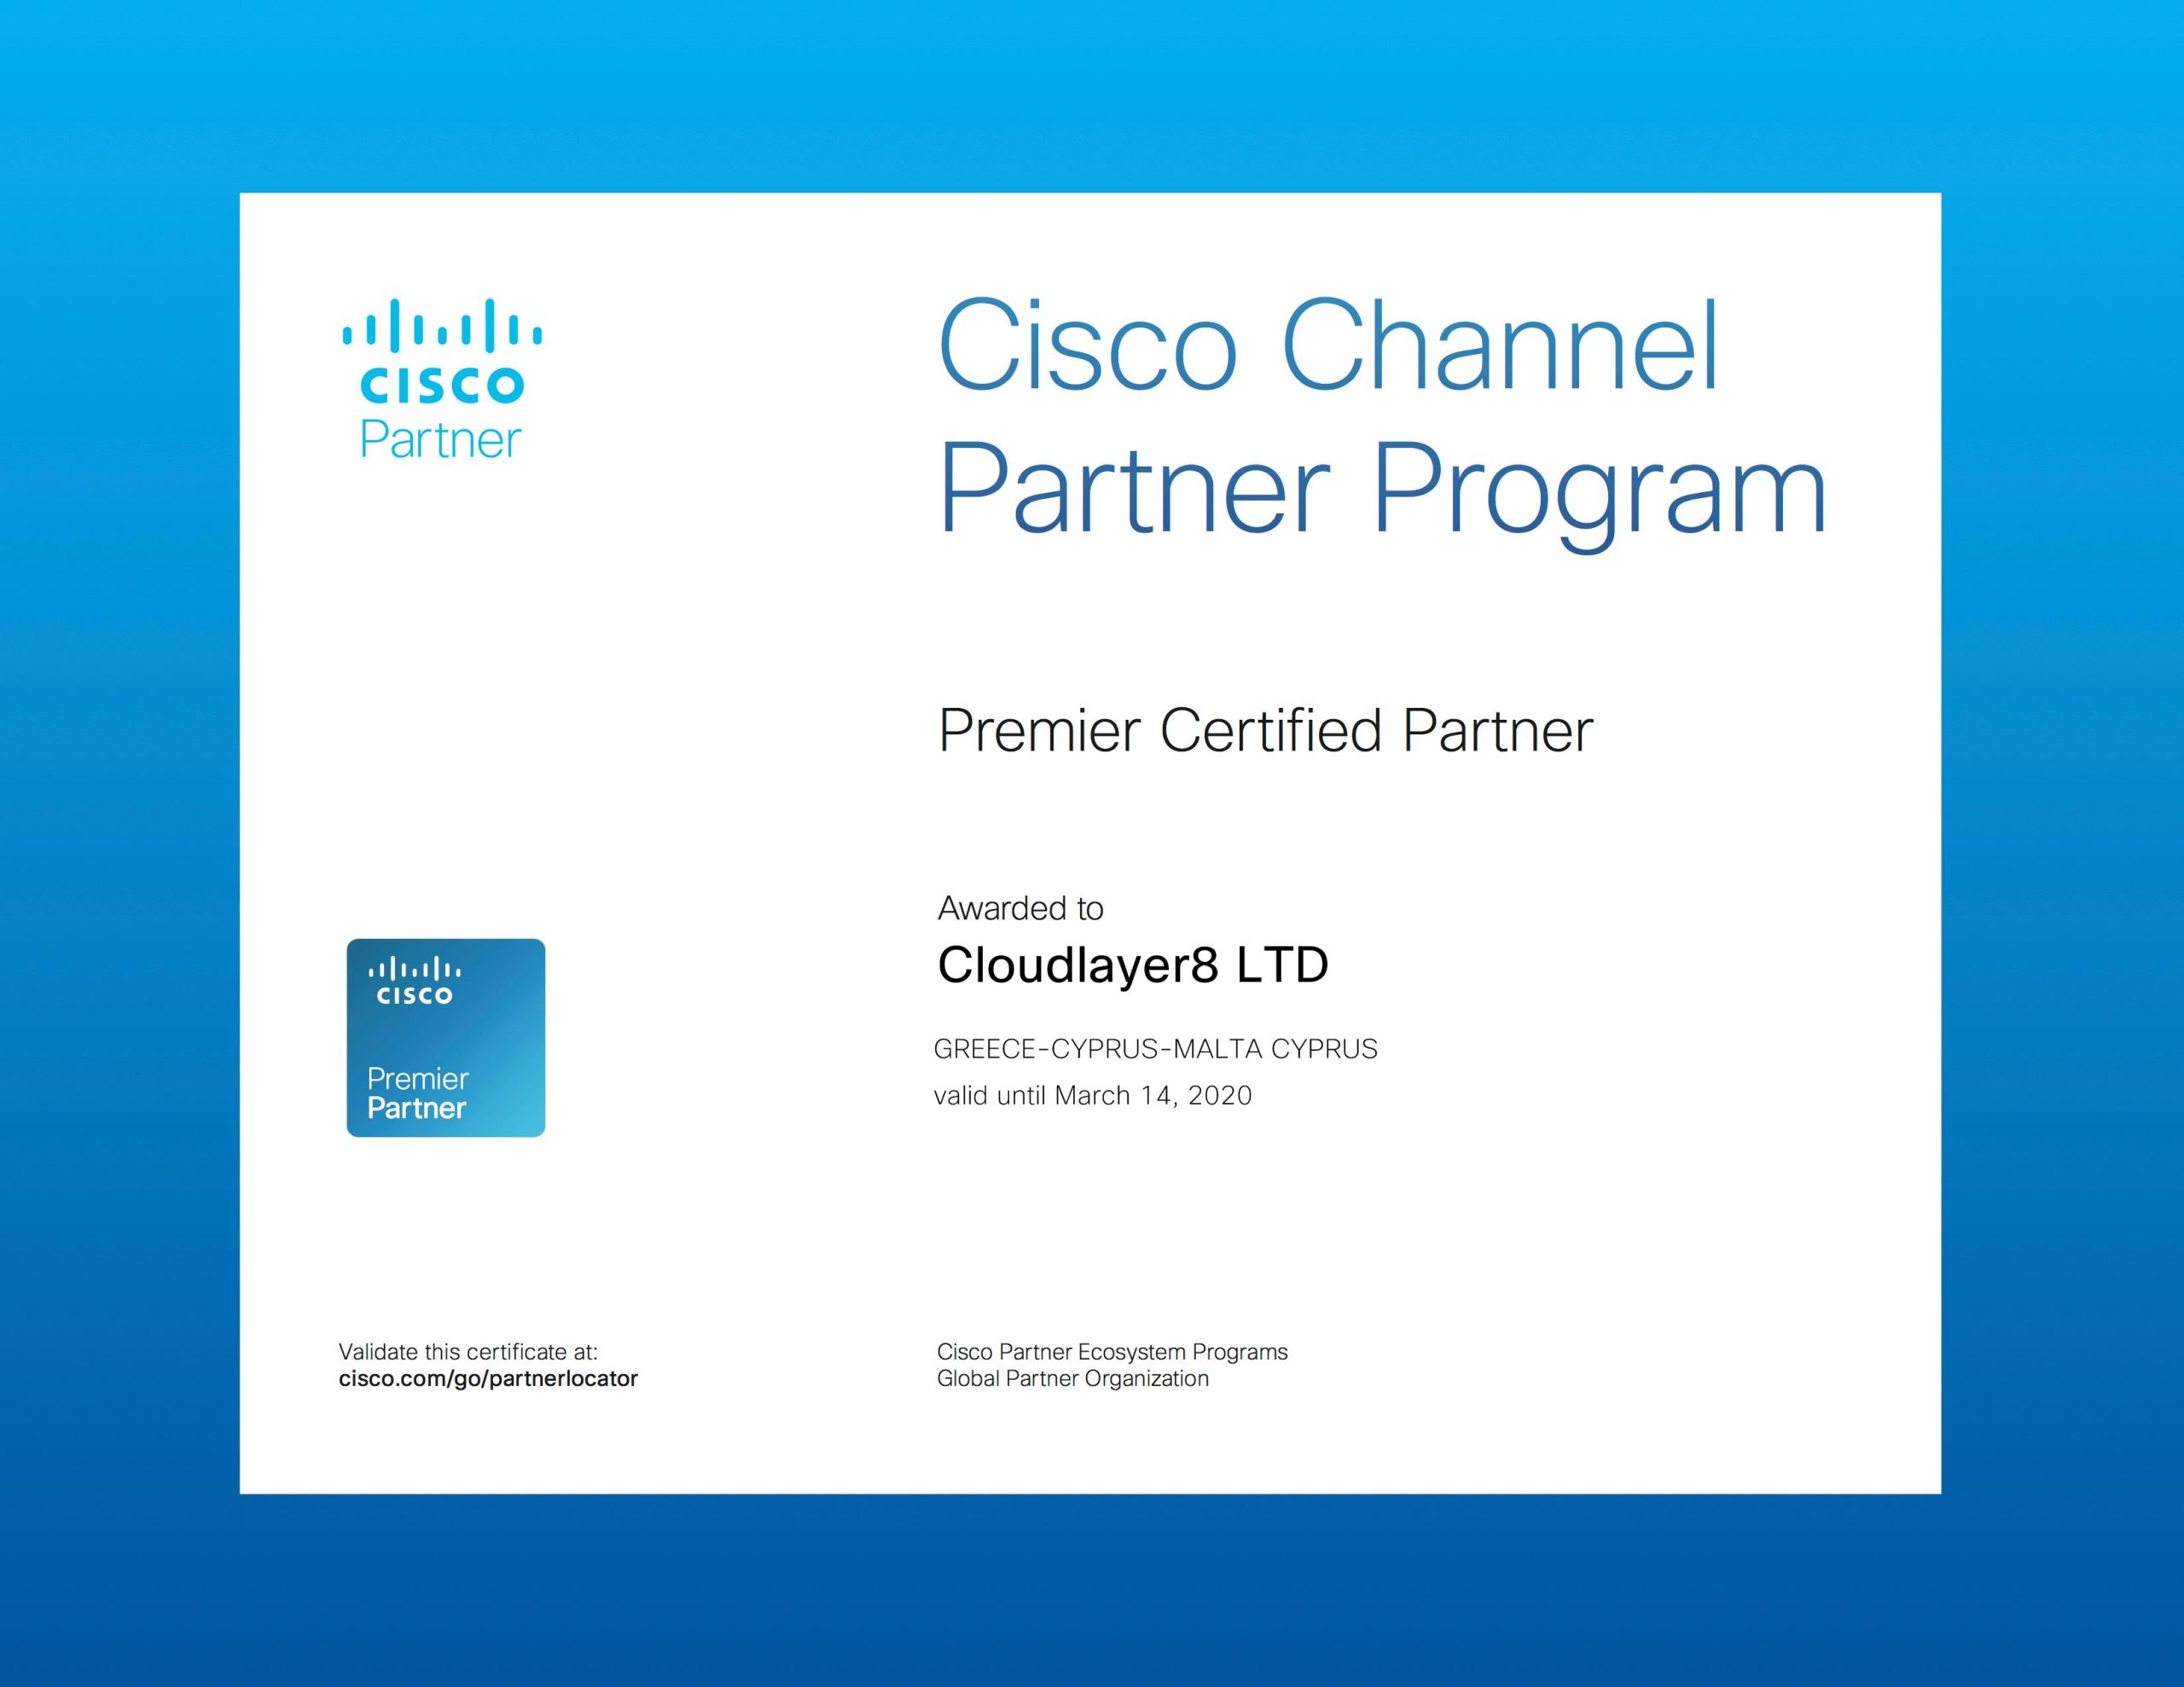 cl8-upgraded-to-cisco-premier-partner